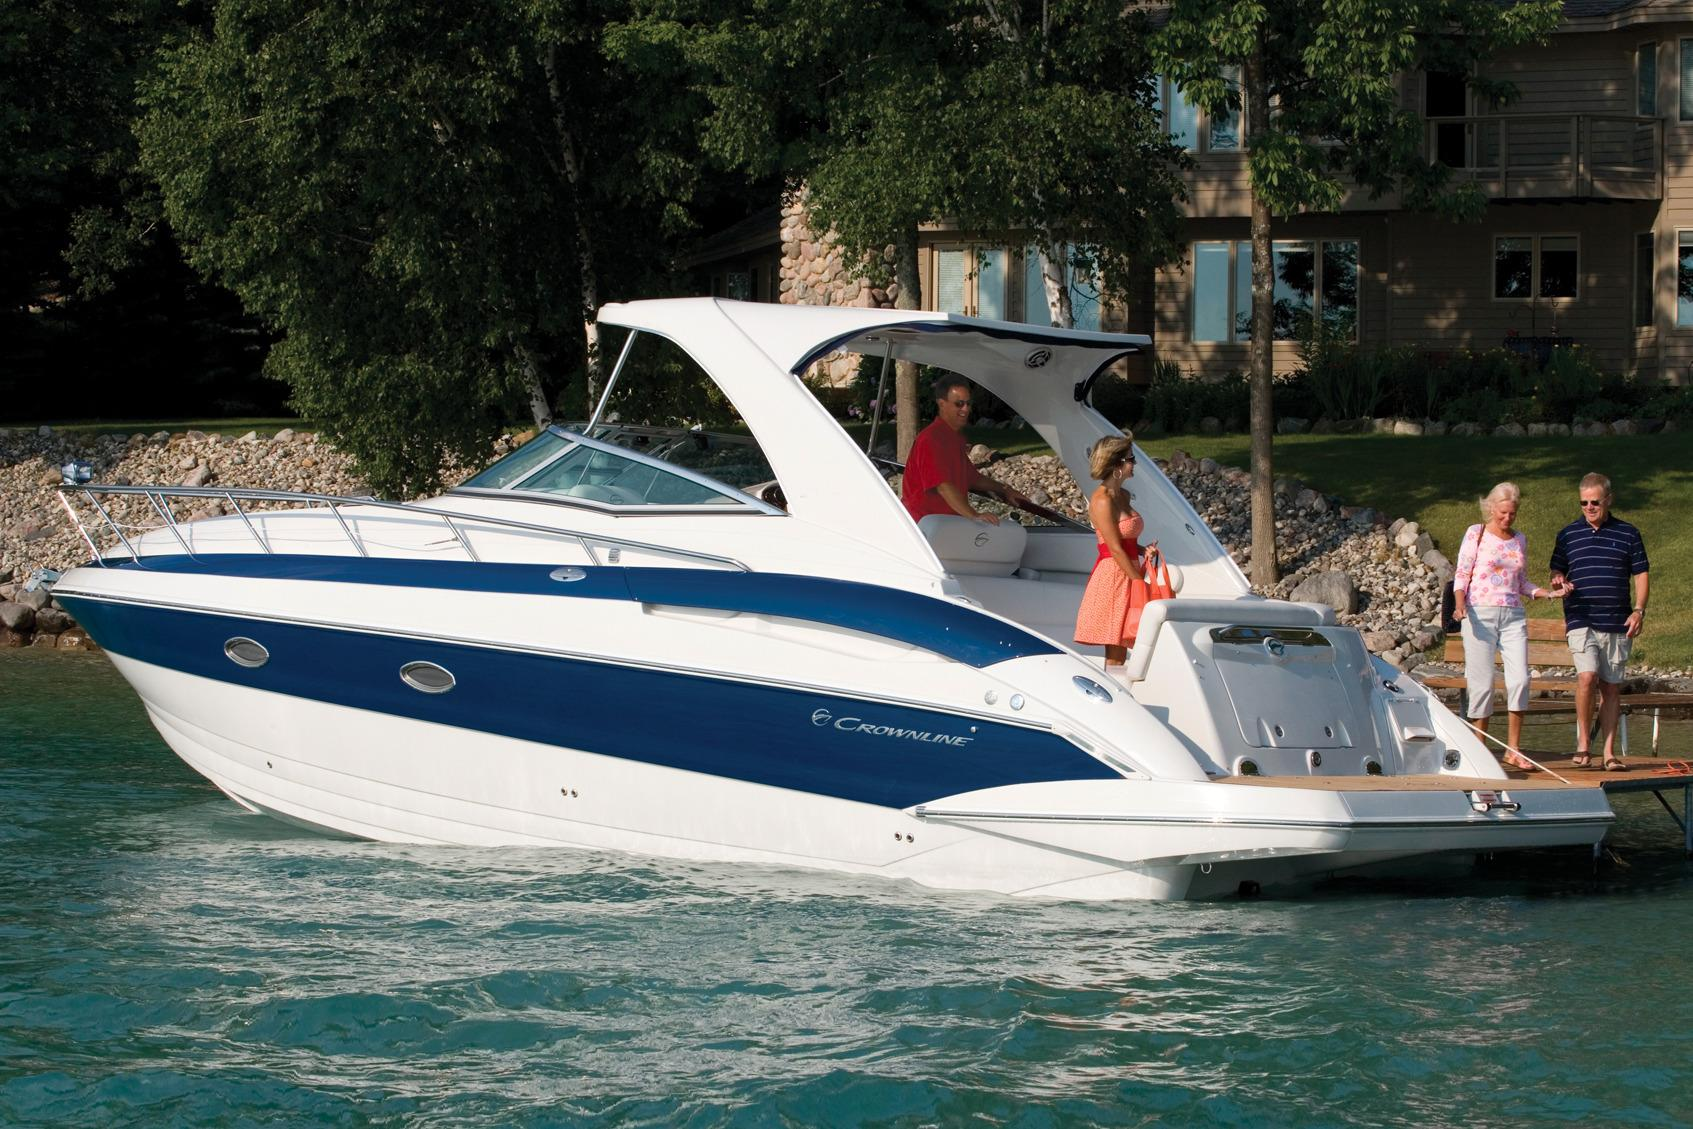 2018 Crownline 350 SY Power Boat For Sale - www.yachtworld.com